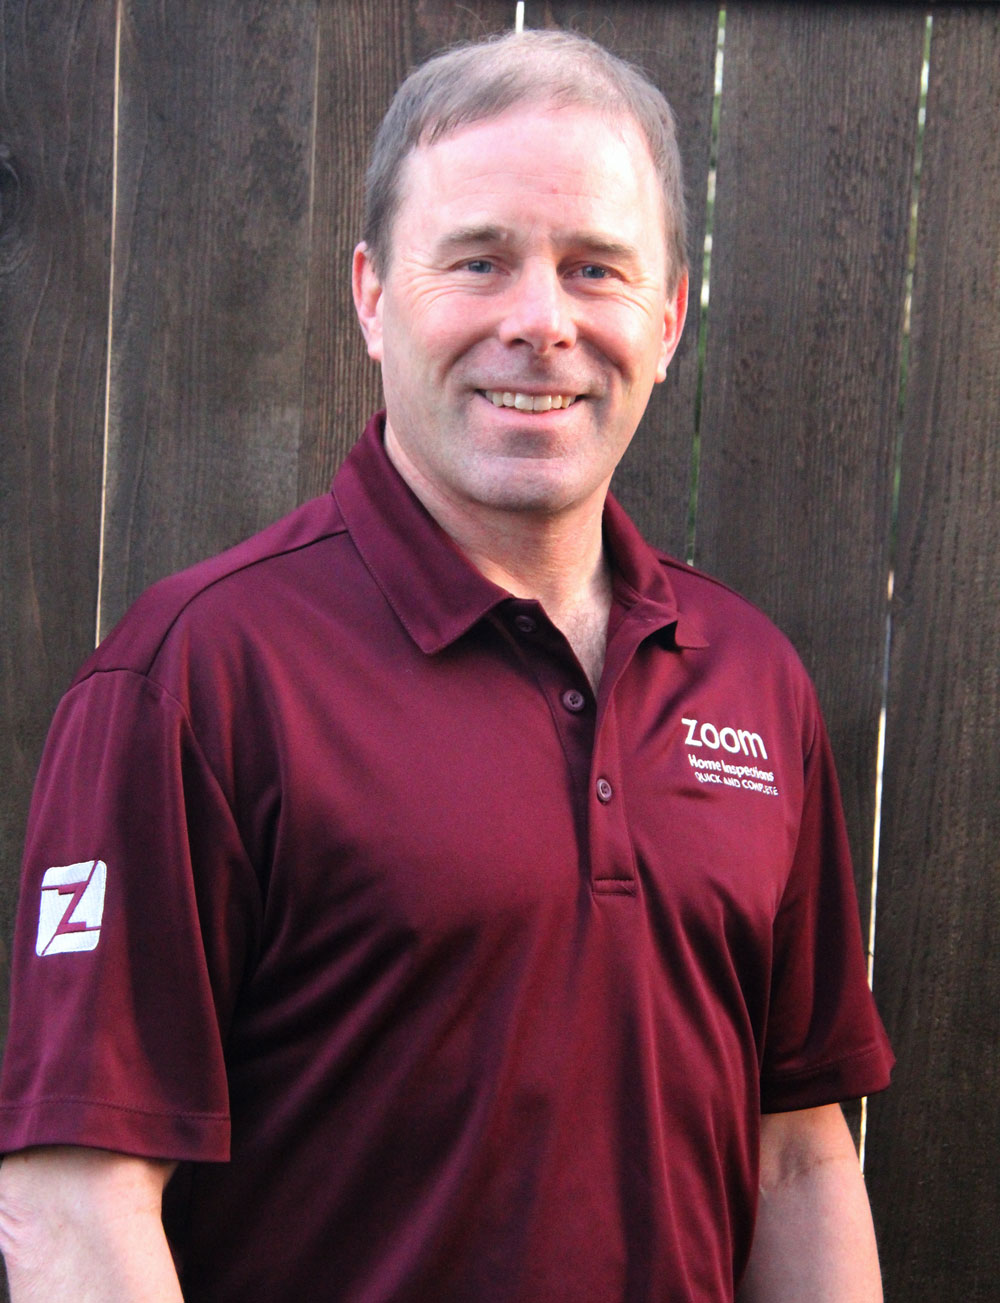 A picture of Brian wearing a shirt that says Zoom Home Inspections. Brian is the owner of Zoom Home Inspections.